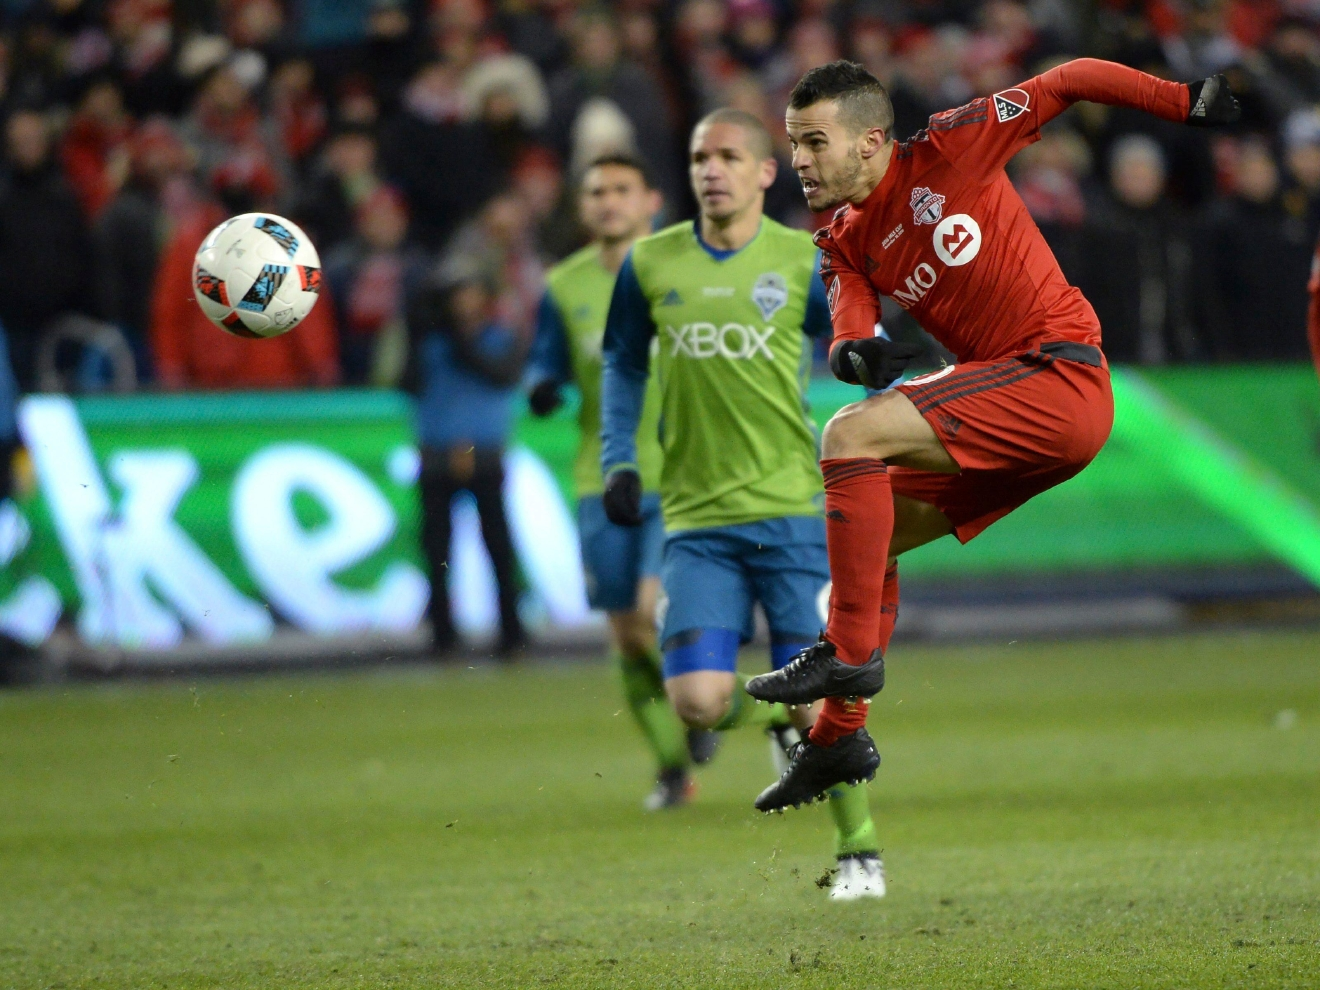 Toronto FC forward Sebastian Giovinco fshoots at the net net during first-half MLS Cup final soccer action against the Seattle Sounders in Toronto, Saturday, Dec. 10, 2016. (Nathan Denette/The Canadian Press via AP)